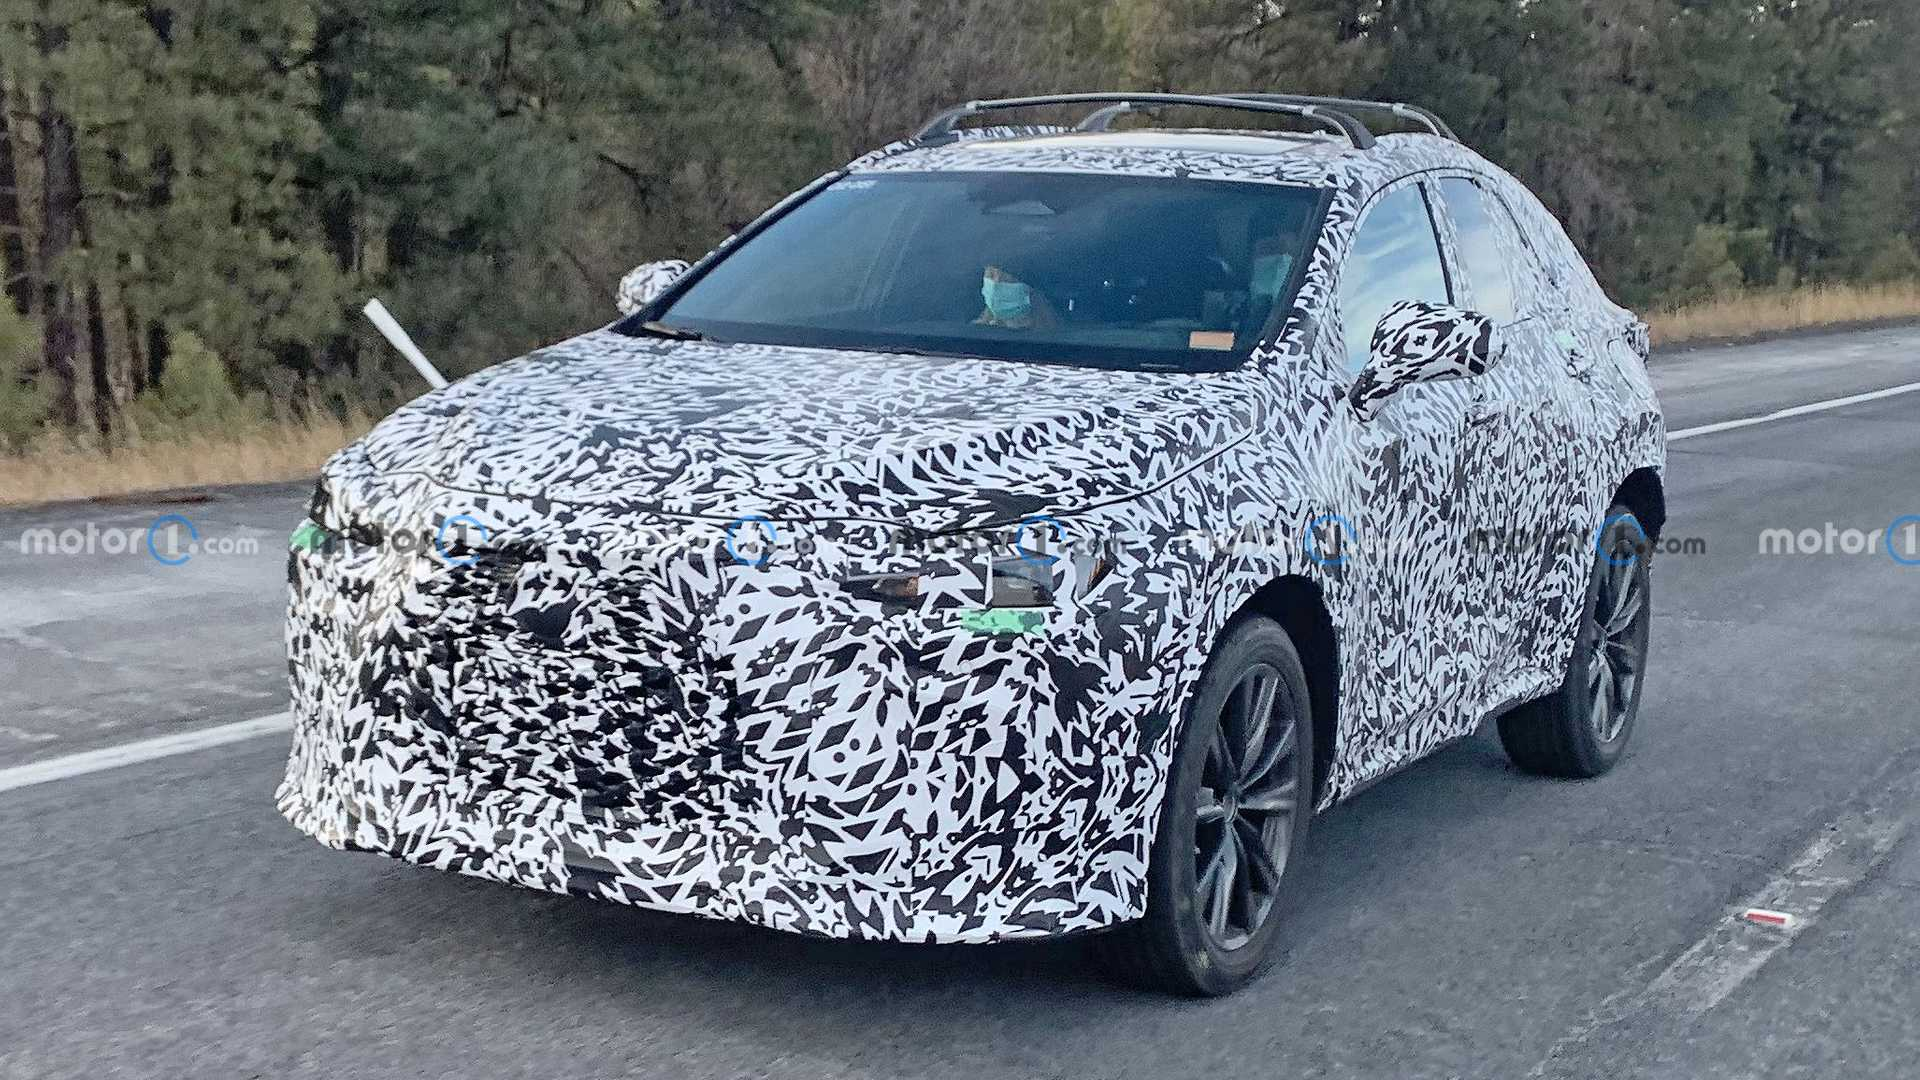 The second generation of the Lexus NX is due out by the end of the year – no wonder the company is already testing it on highways.